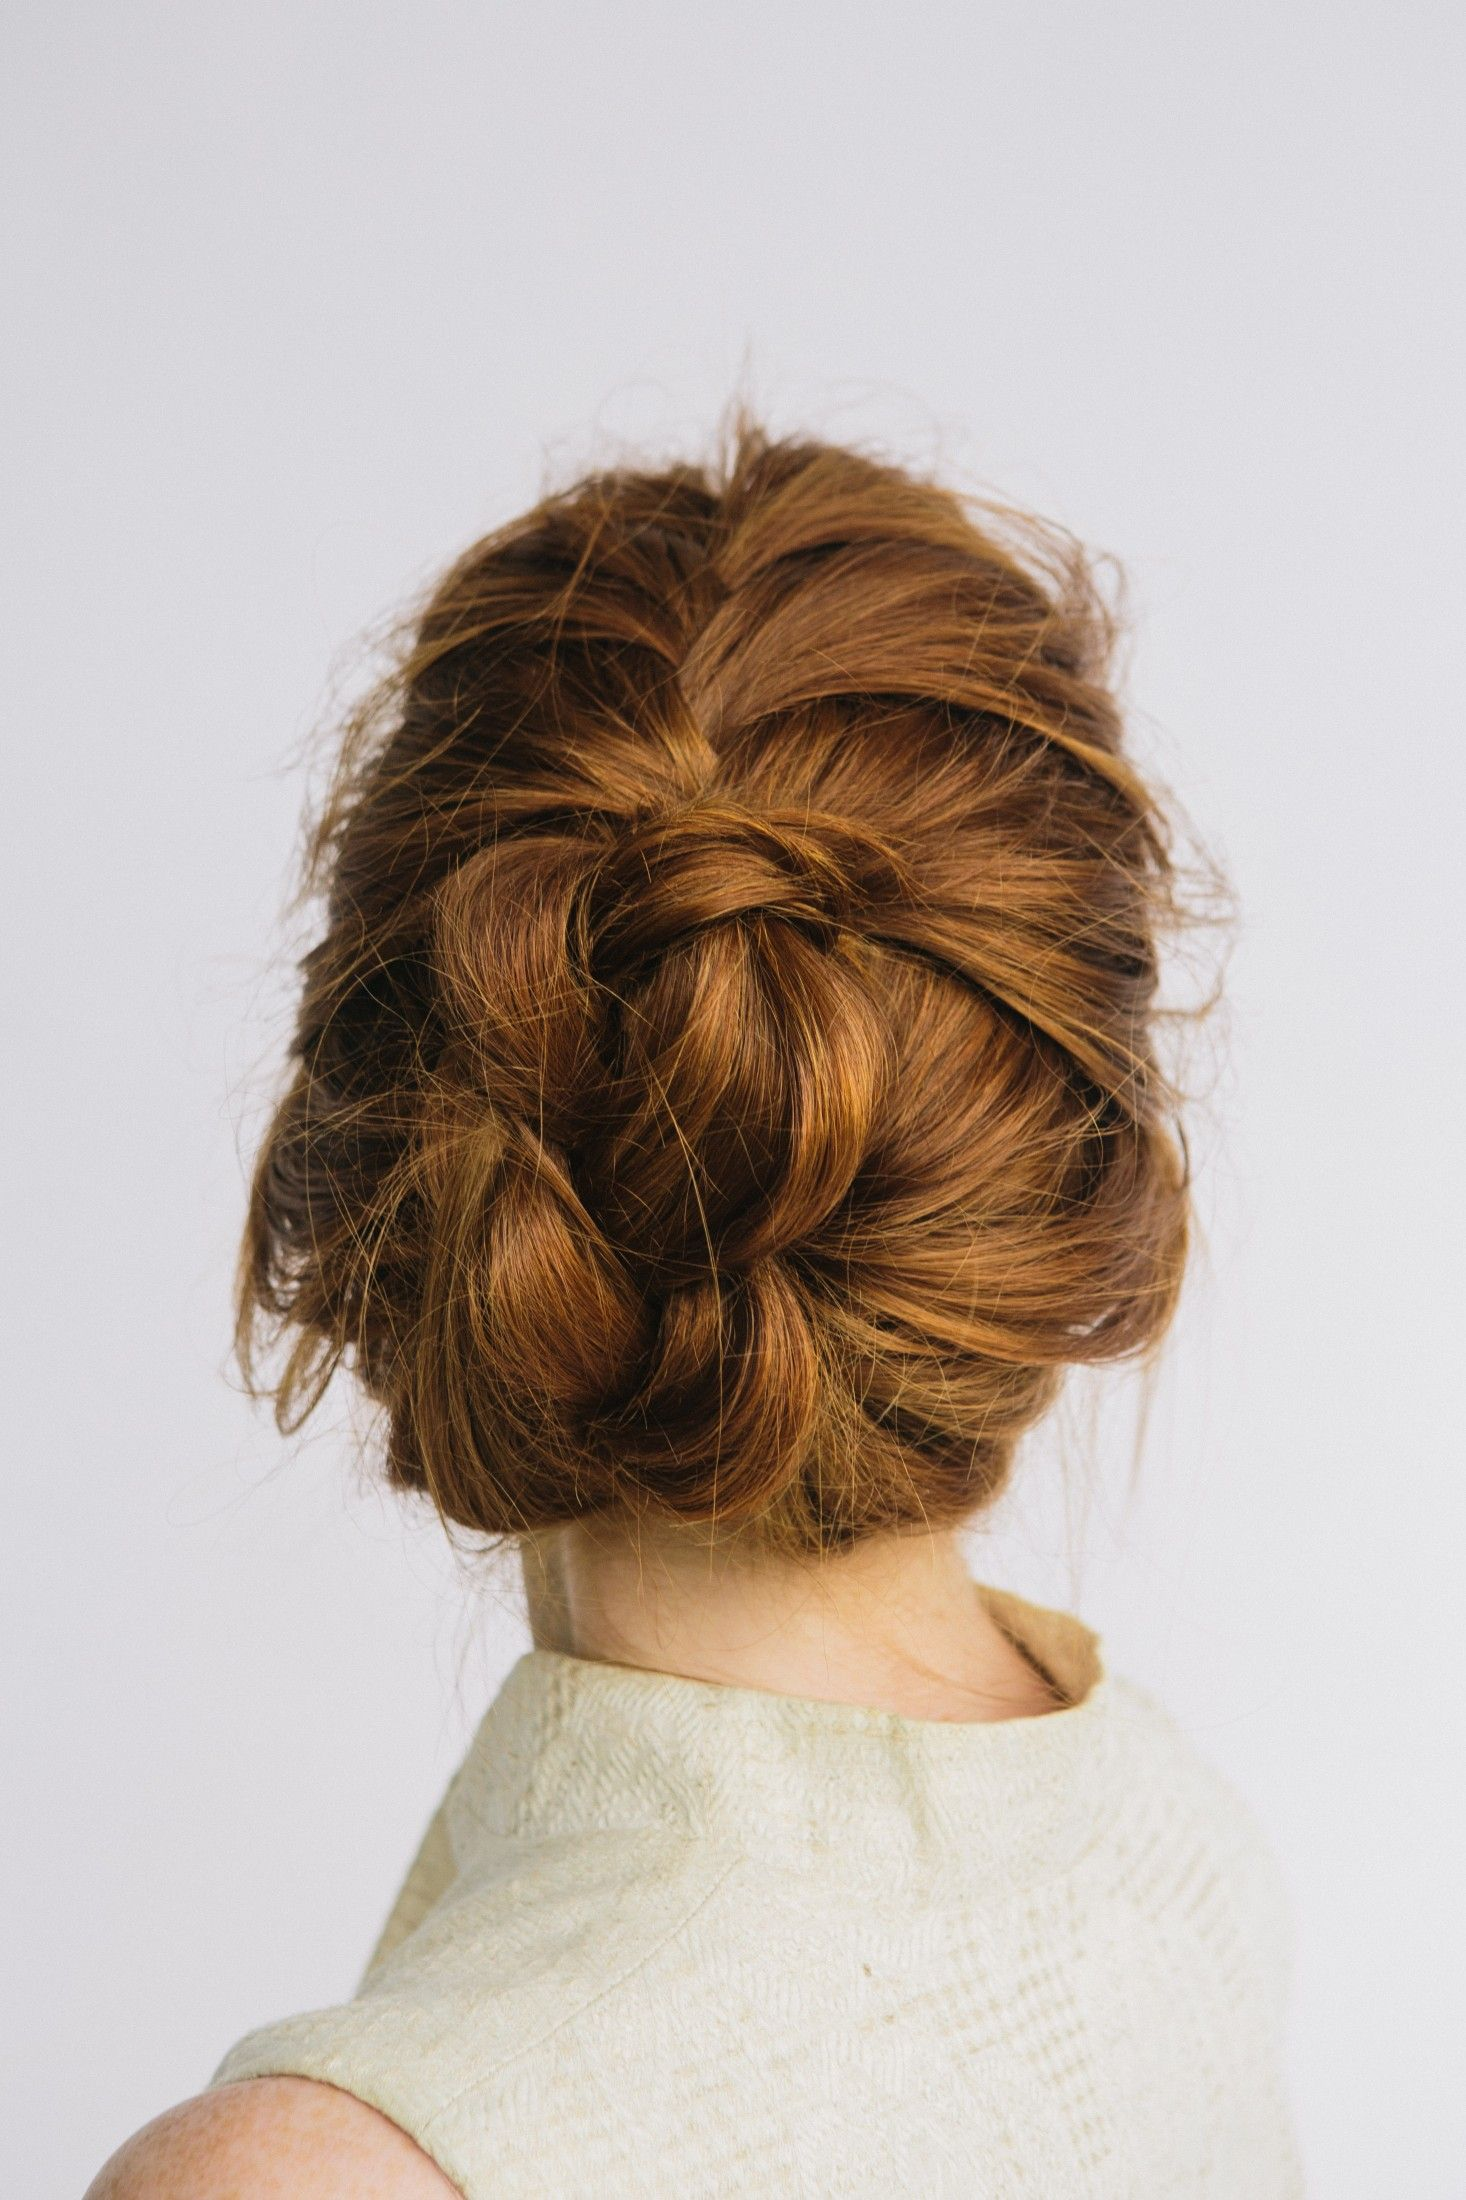 How-To: Braided Bun With L'Oreal Paris Advanced Hairstyle